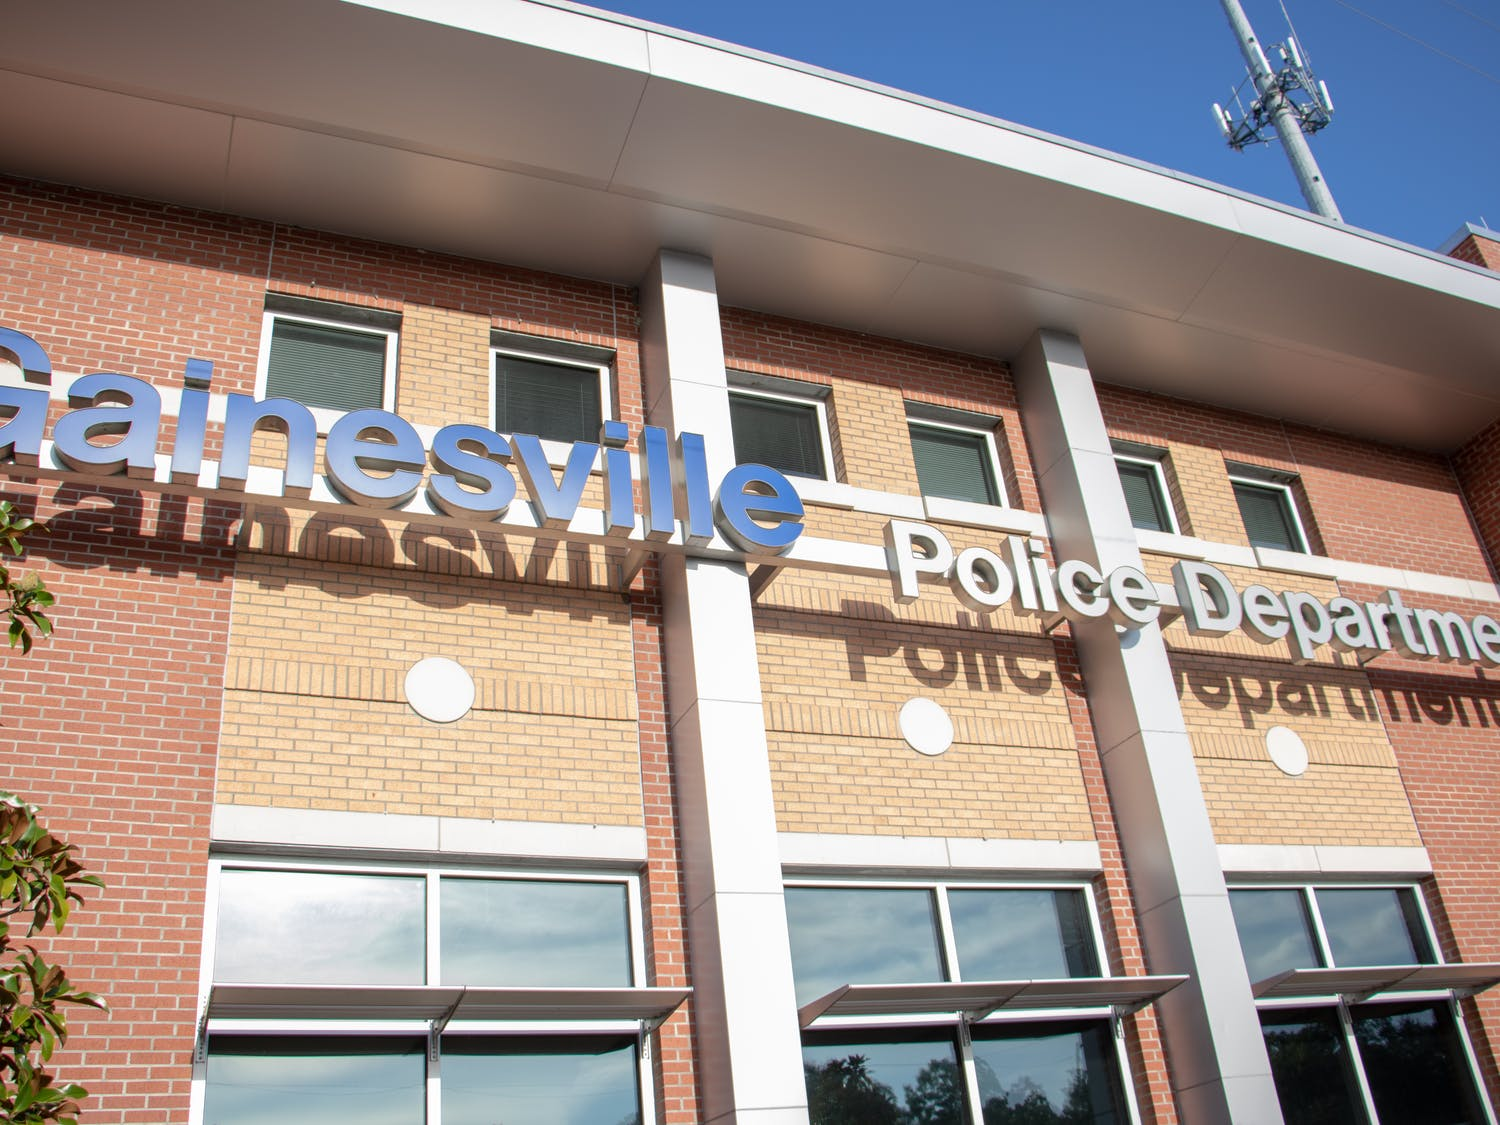 Gainesville Police Department currently has 22 vacancies for officers as contract negotiations for officers on the force are underway. The city and police union are meeting today, and salaries and benefits are on the table.